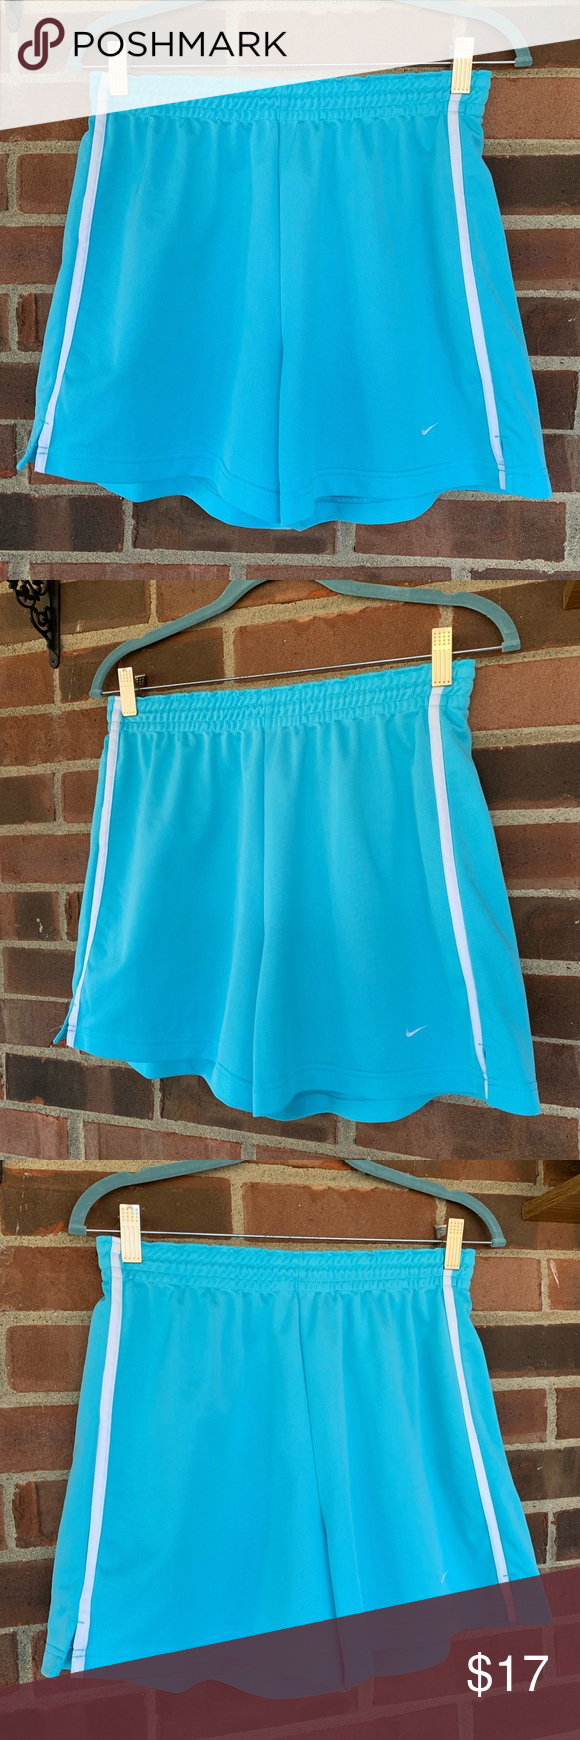 "Nike light blue shorts Nike light blue shorts, Sz M.  In great condition.  Elastic waist   15"" out seam approximately   Smoke and pet free home, fast shipping.  0106 B29 Nike Shorts #lightblueshorts"